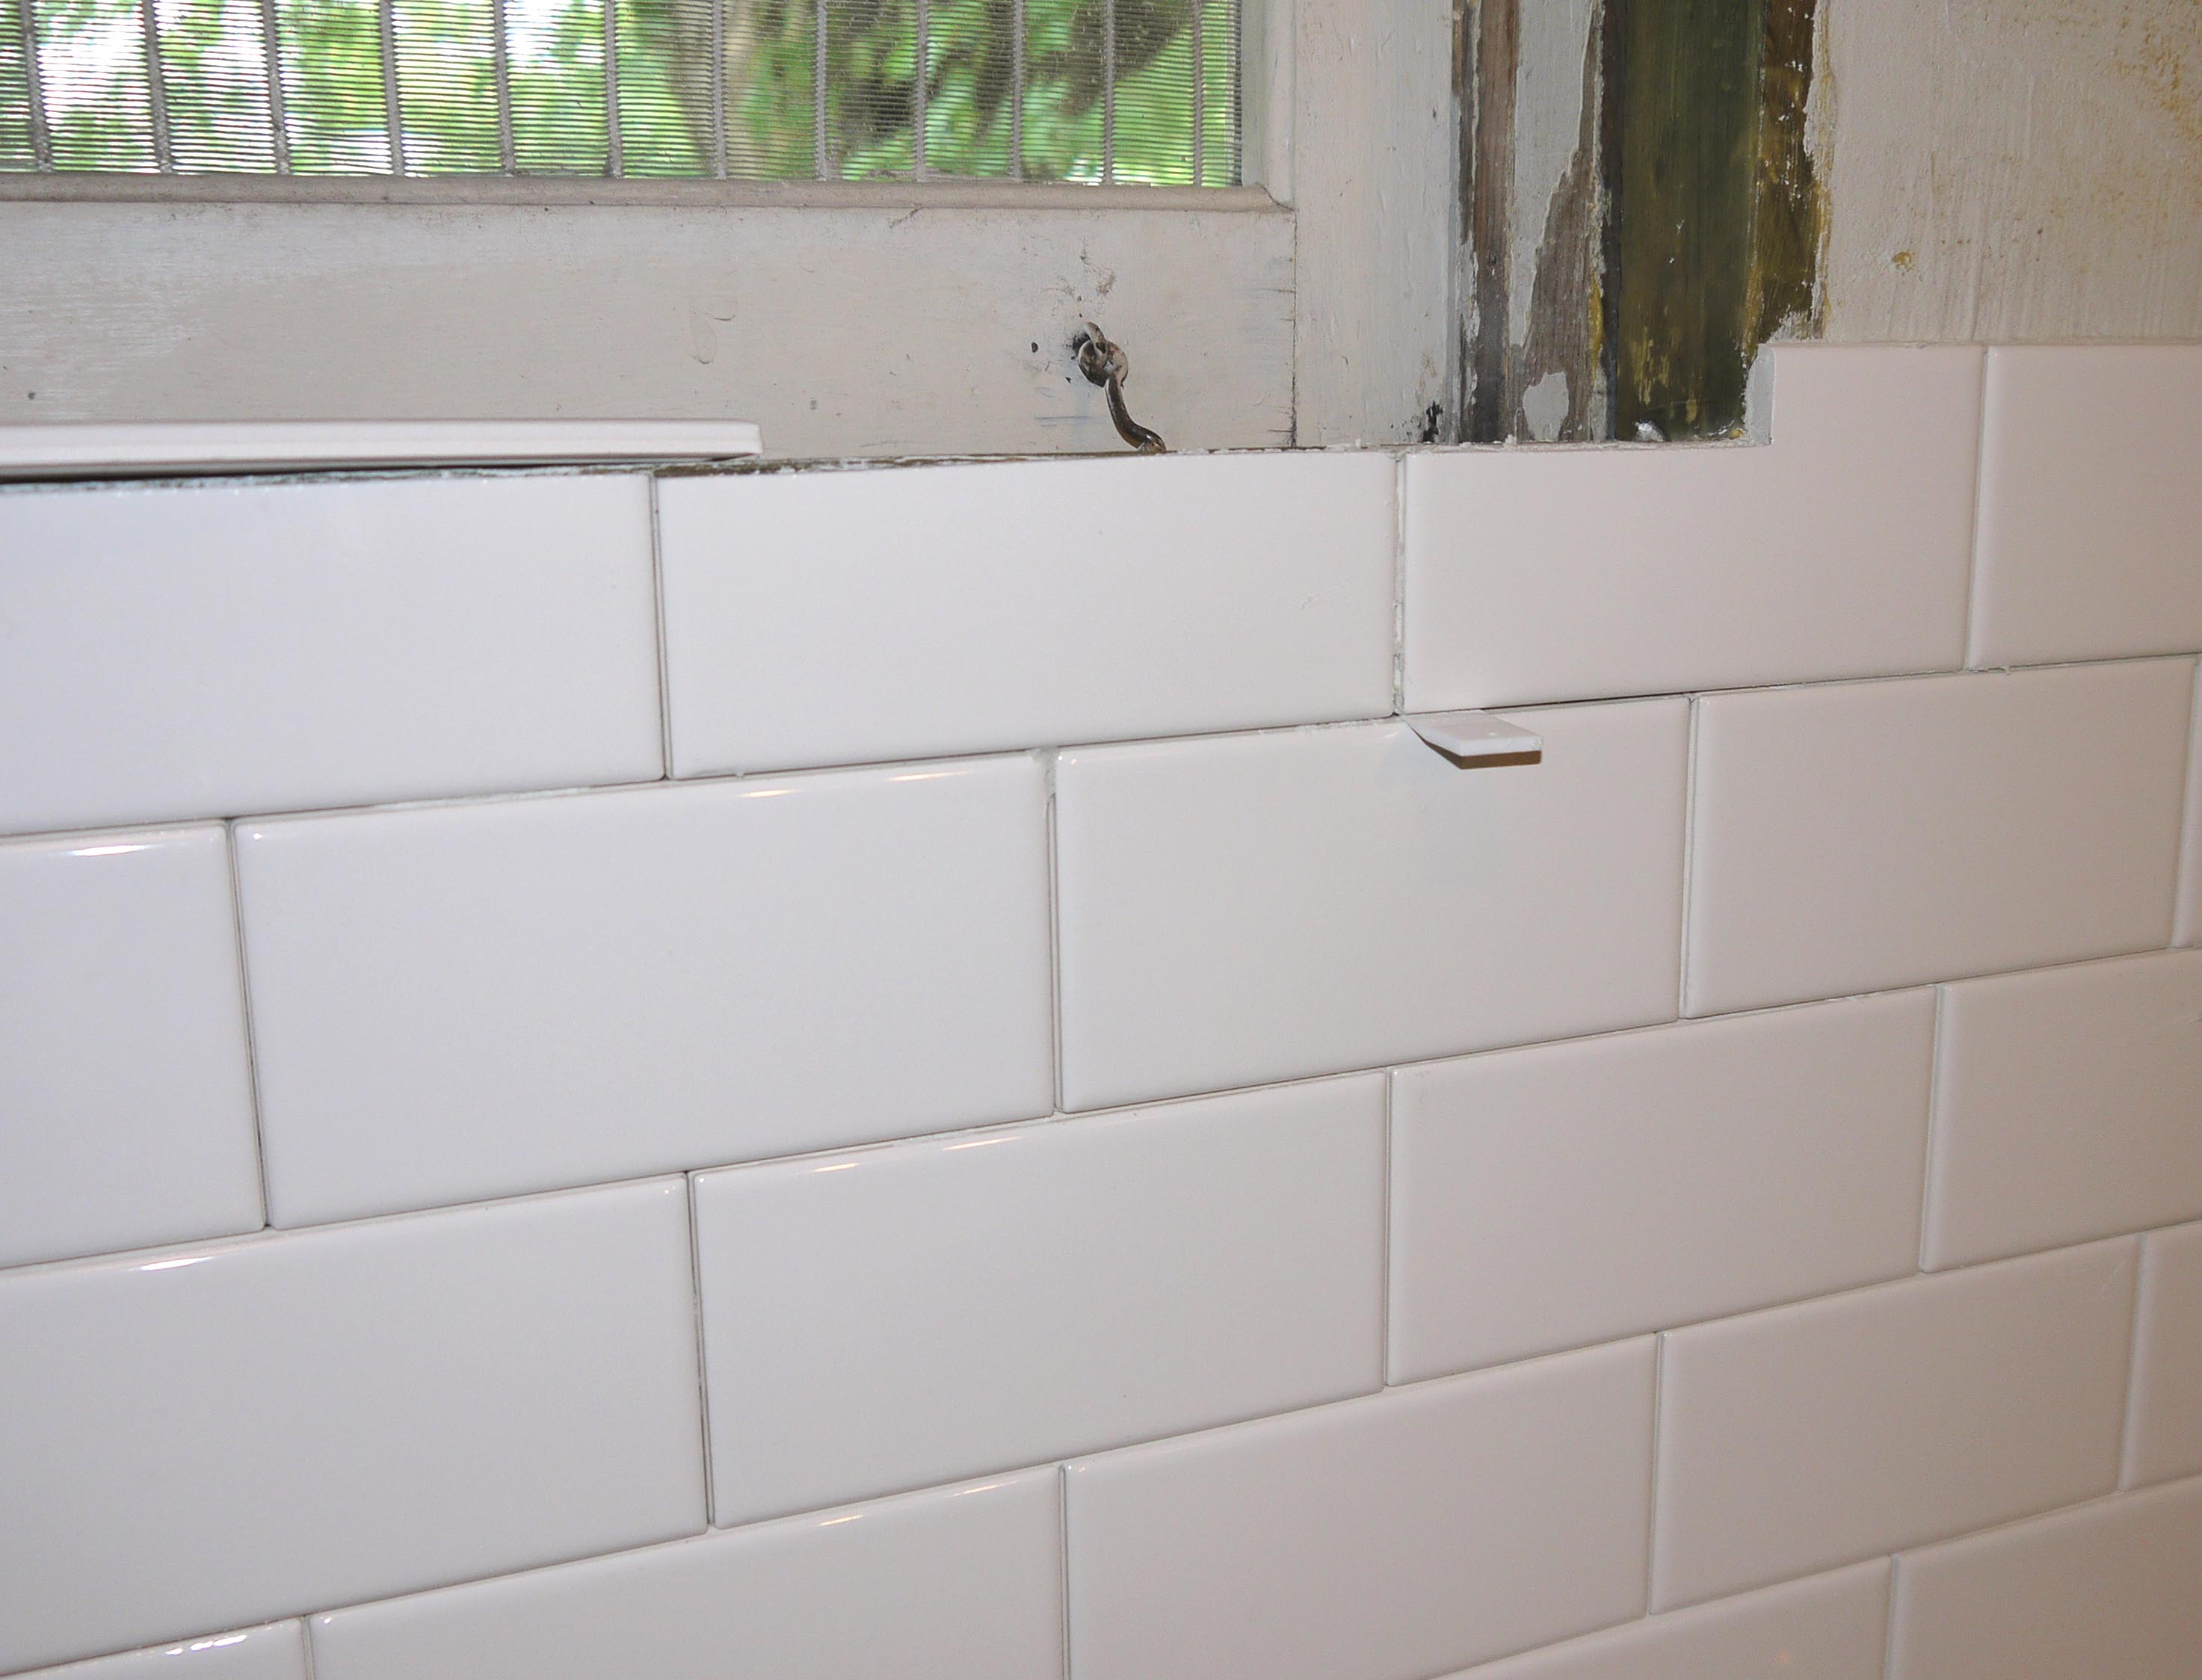 Floor up and adam ries it took several long days hundreds of trips outside to the wet saw to cut and then re cut and then cut my fingers on sharp edge of the tile dailygadgetfo Choice Image